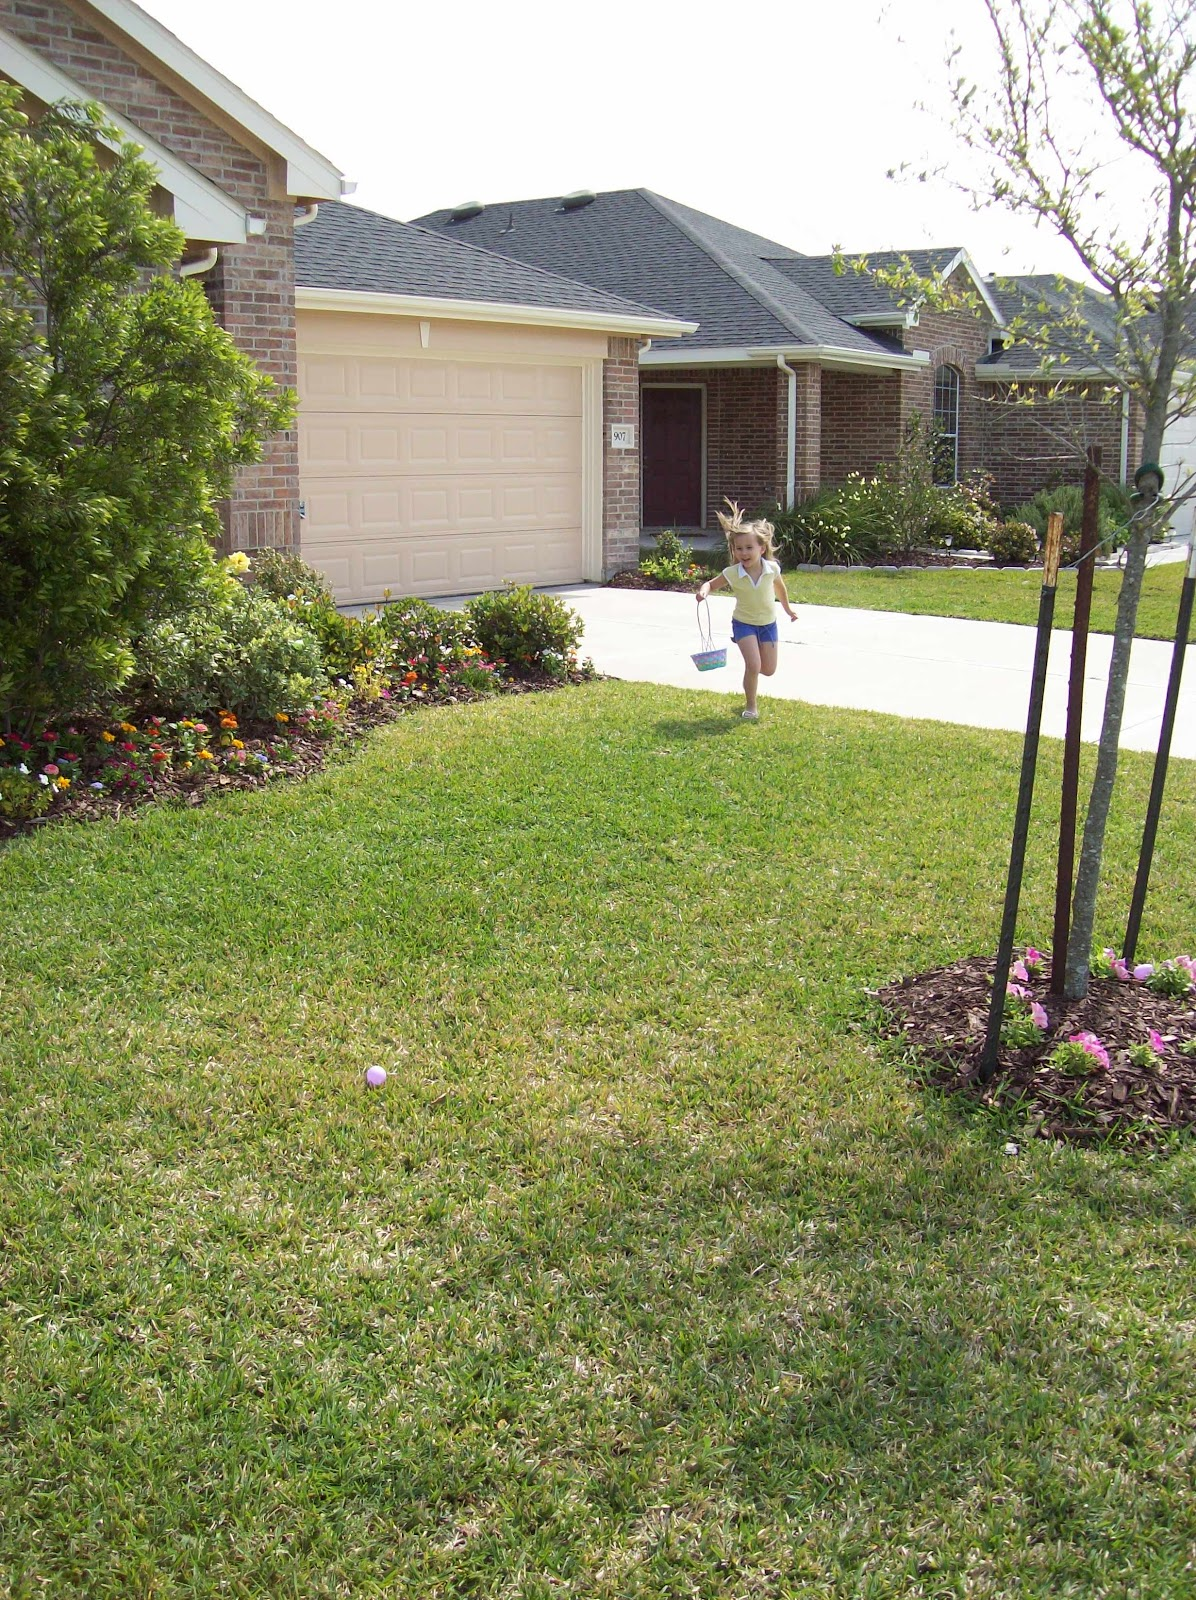 Easter Egg Hunting - 101_2235.JPG